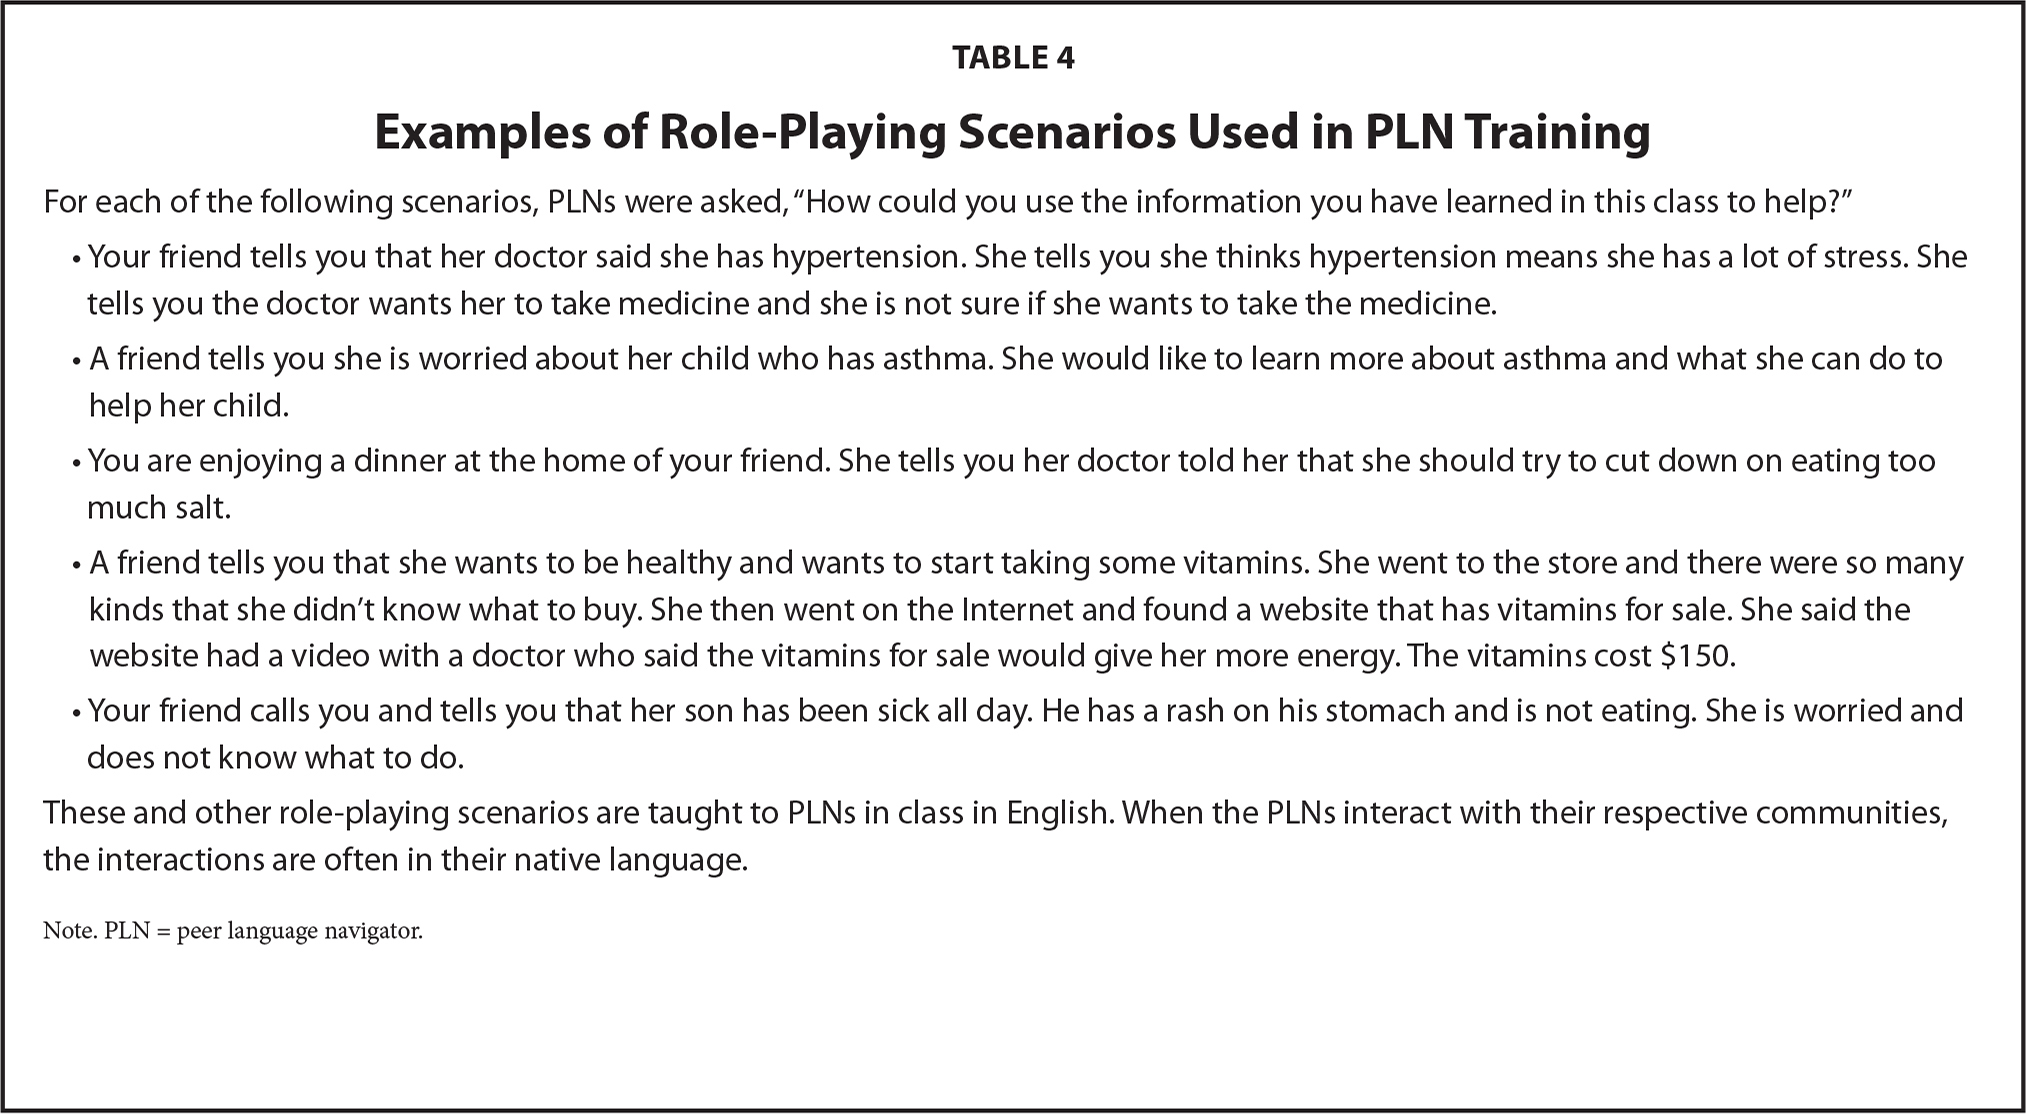 Examples of Role-Playing Scenarios Used in PLN Training